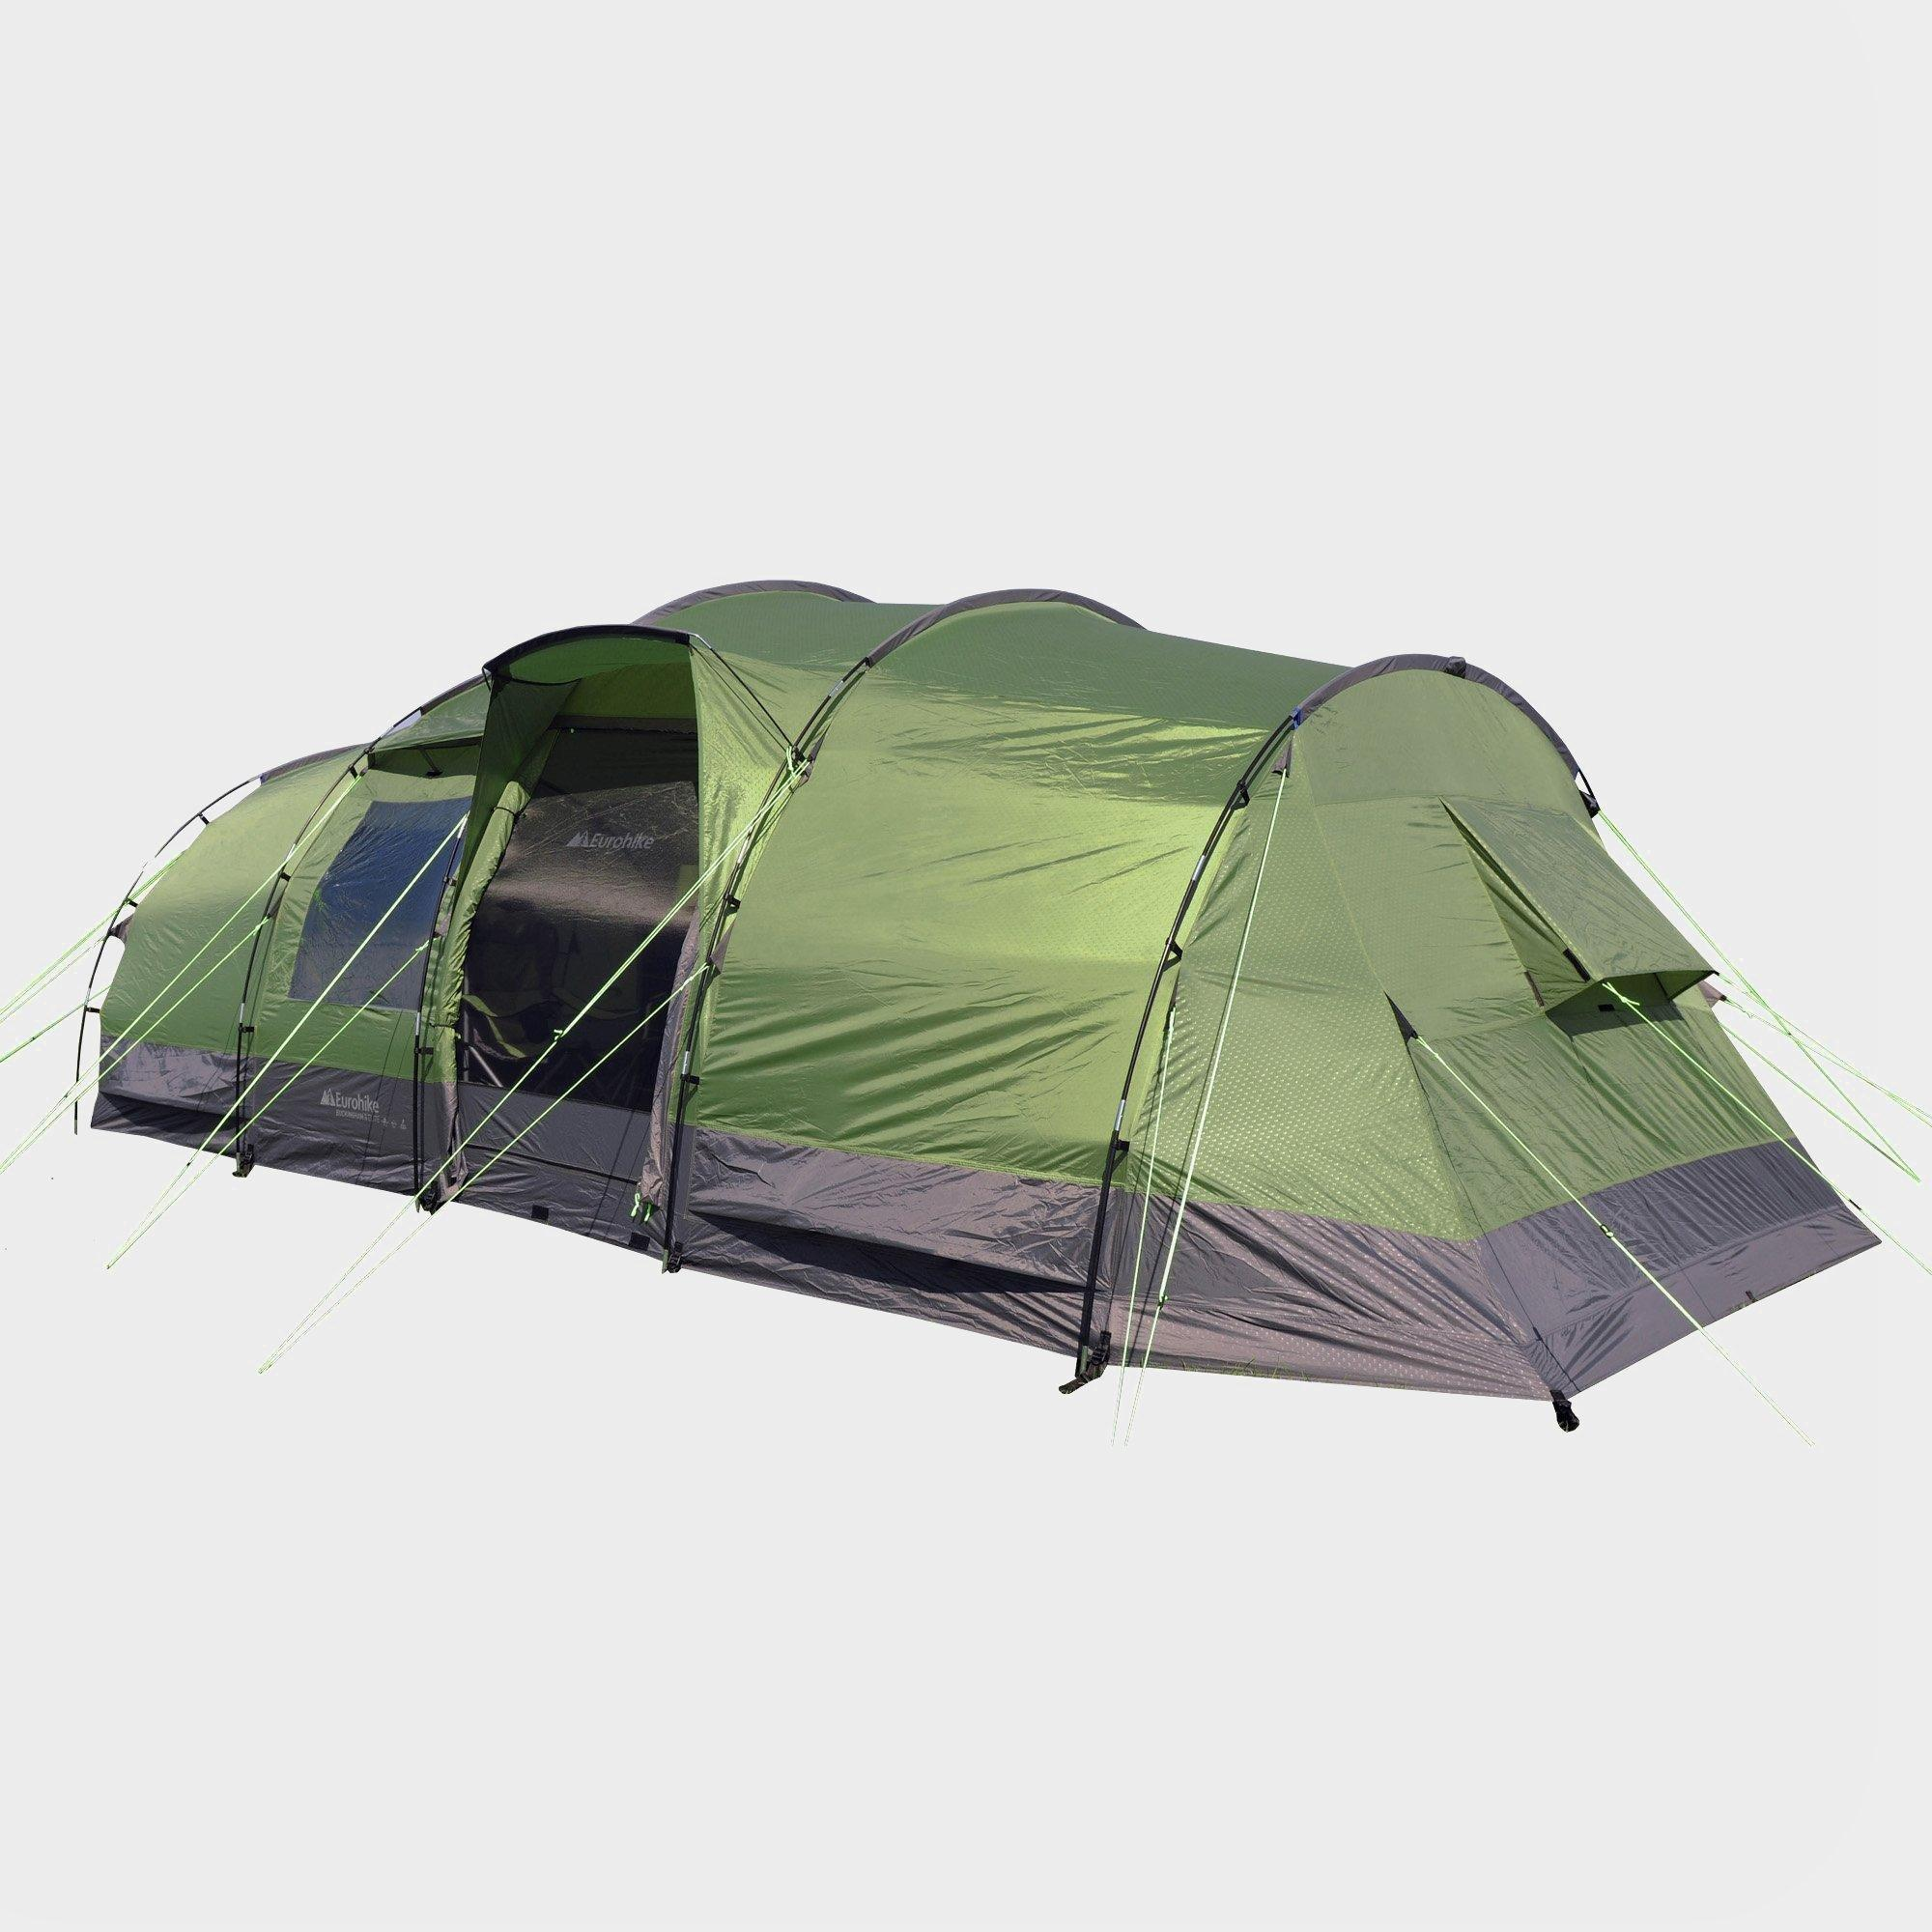 Eurohike Buckingham Elite 8 Tent Buyer Compare Tent